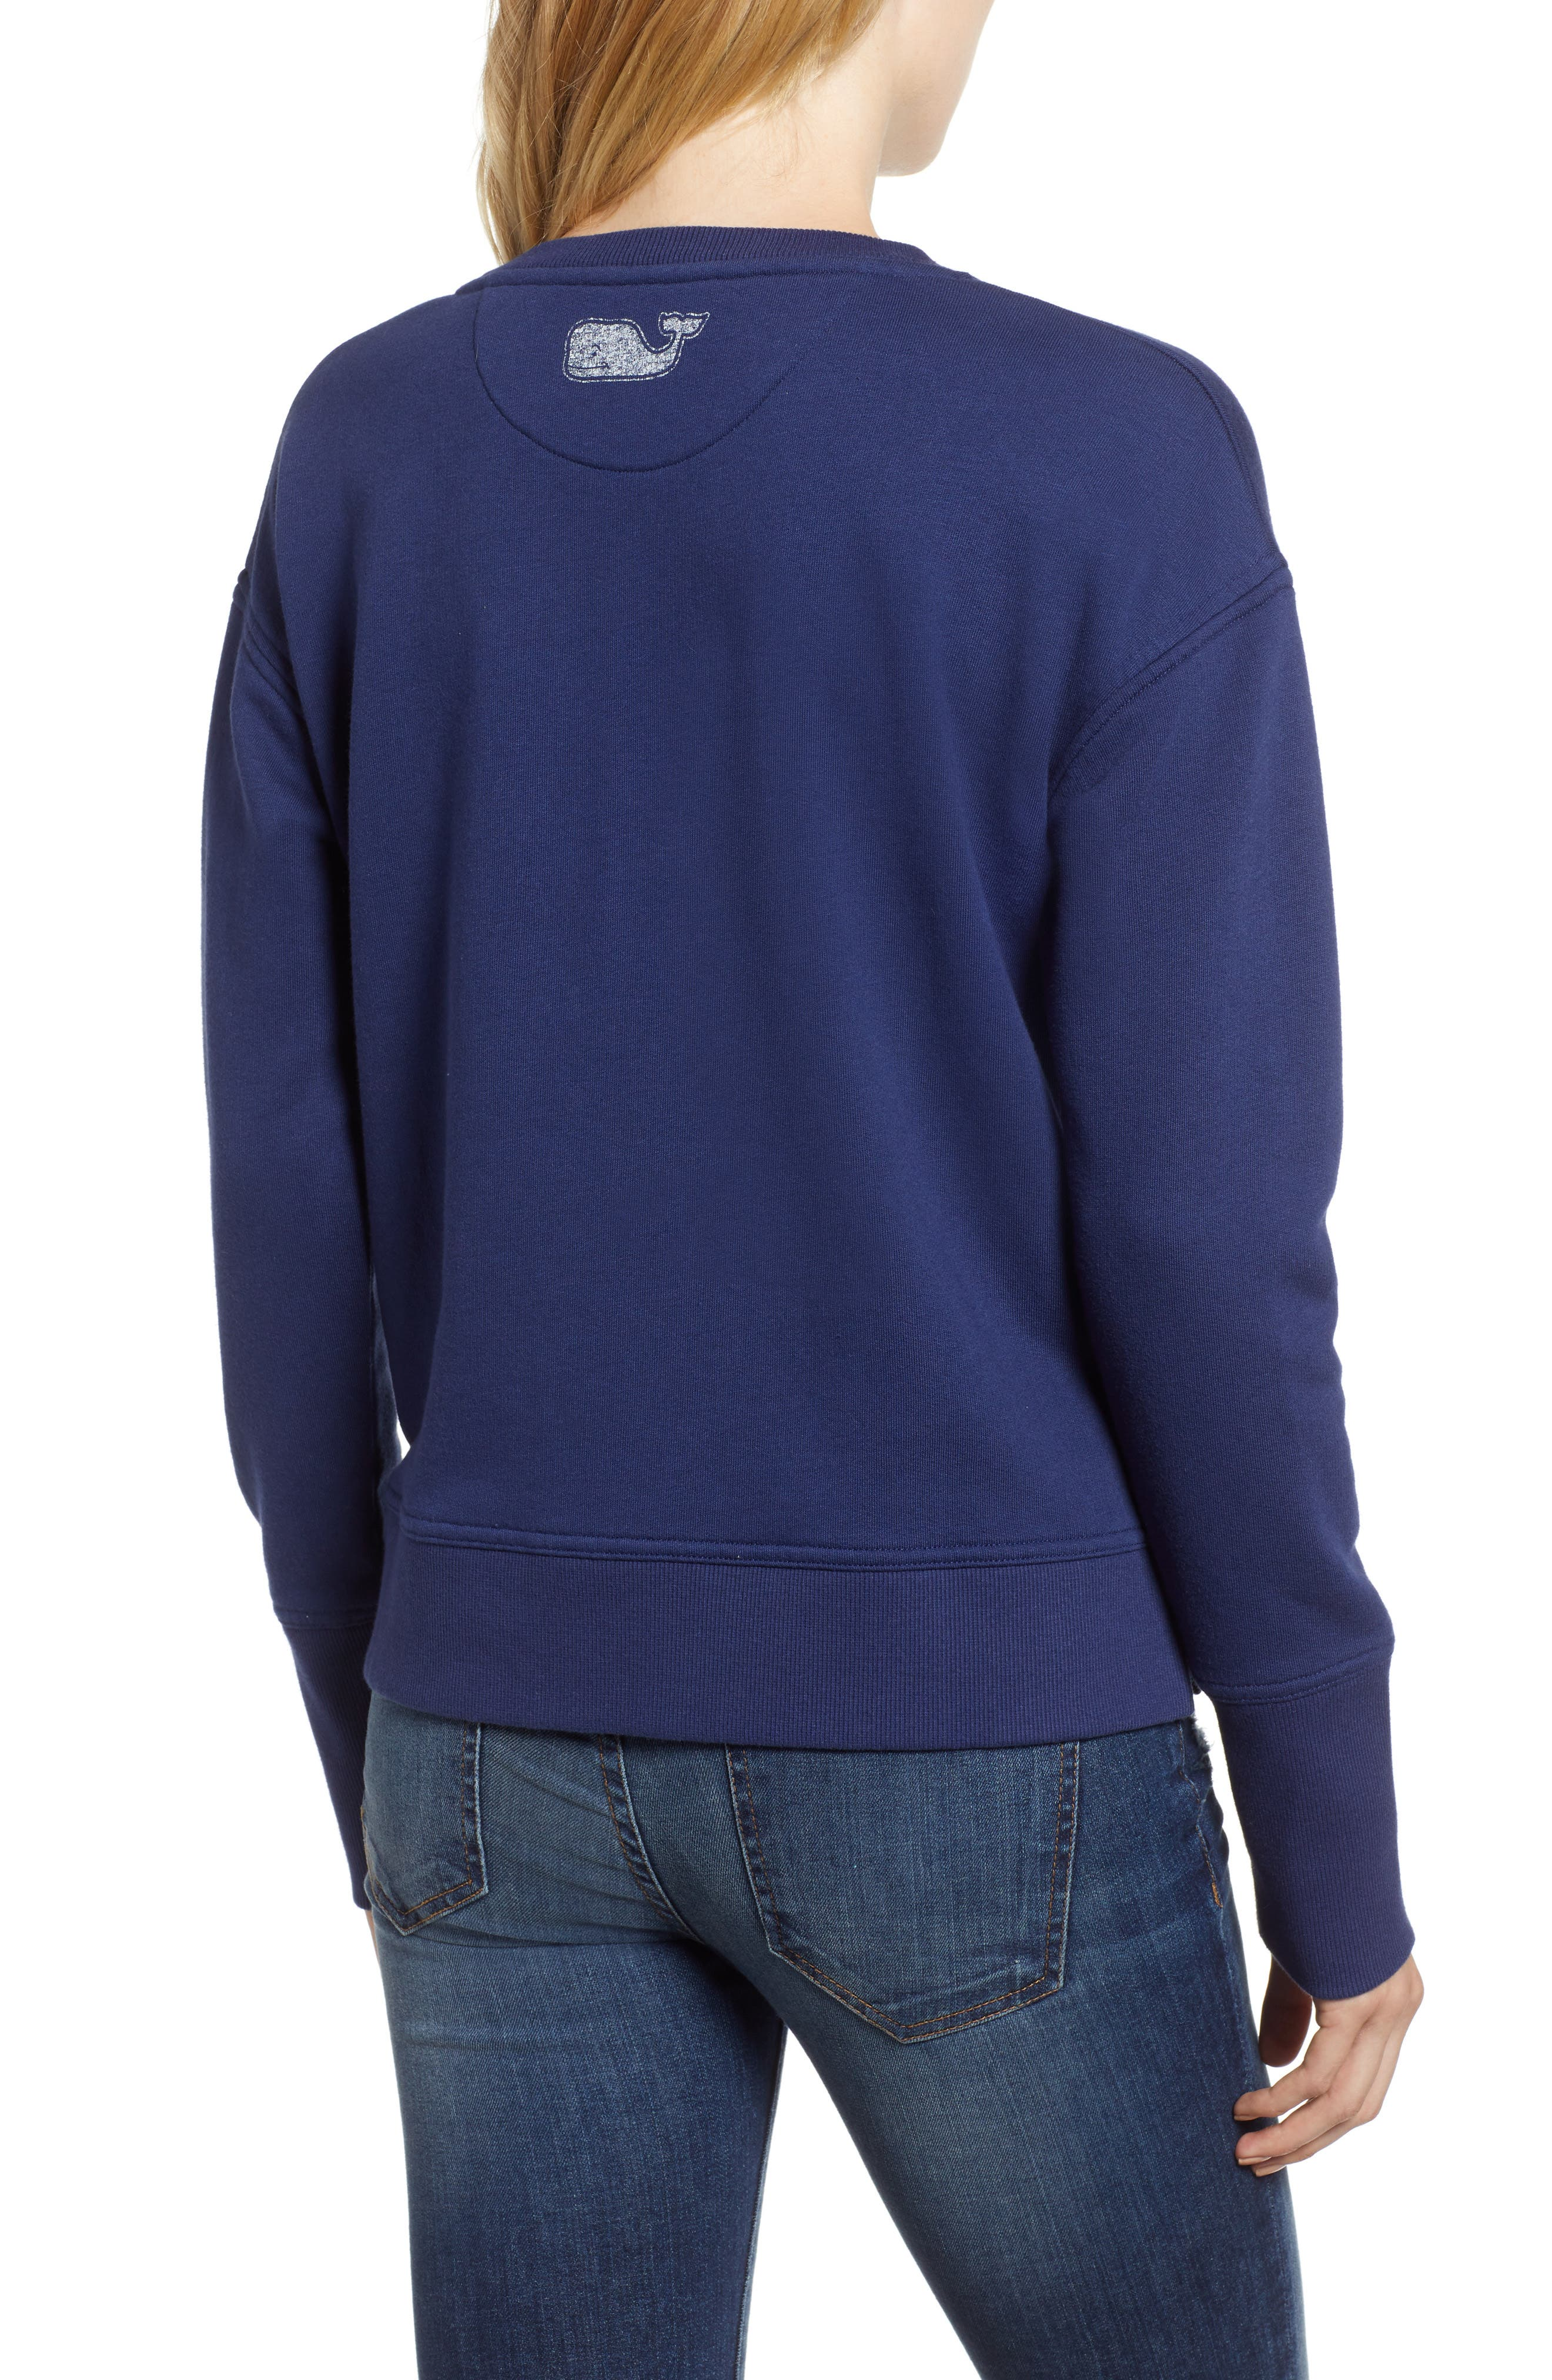 Crewneck Cotton Blend Sweatshirt,                             Alternate thumbnail 2, color,                             476